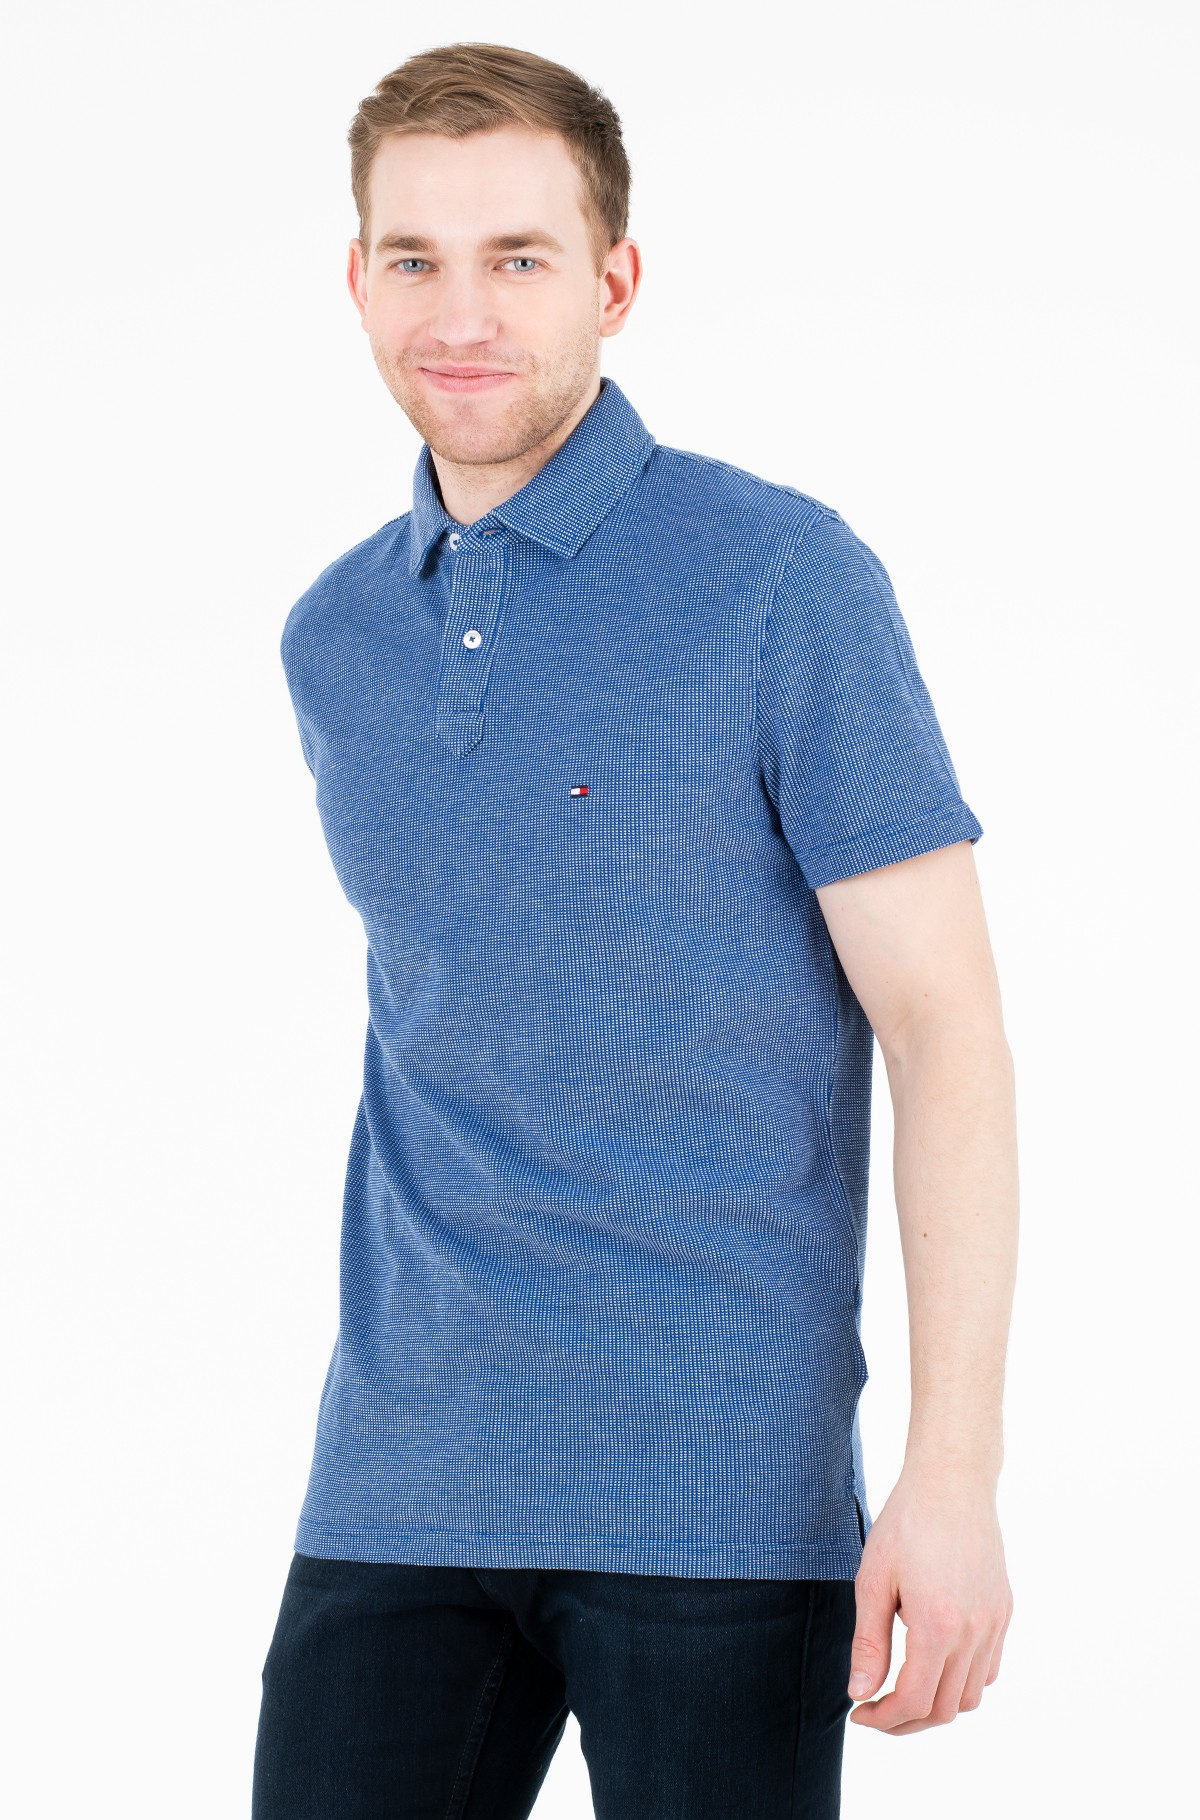 Polokrekls  STRUCTURED REGULAR POLO-full-1